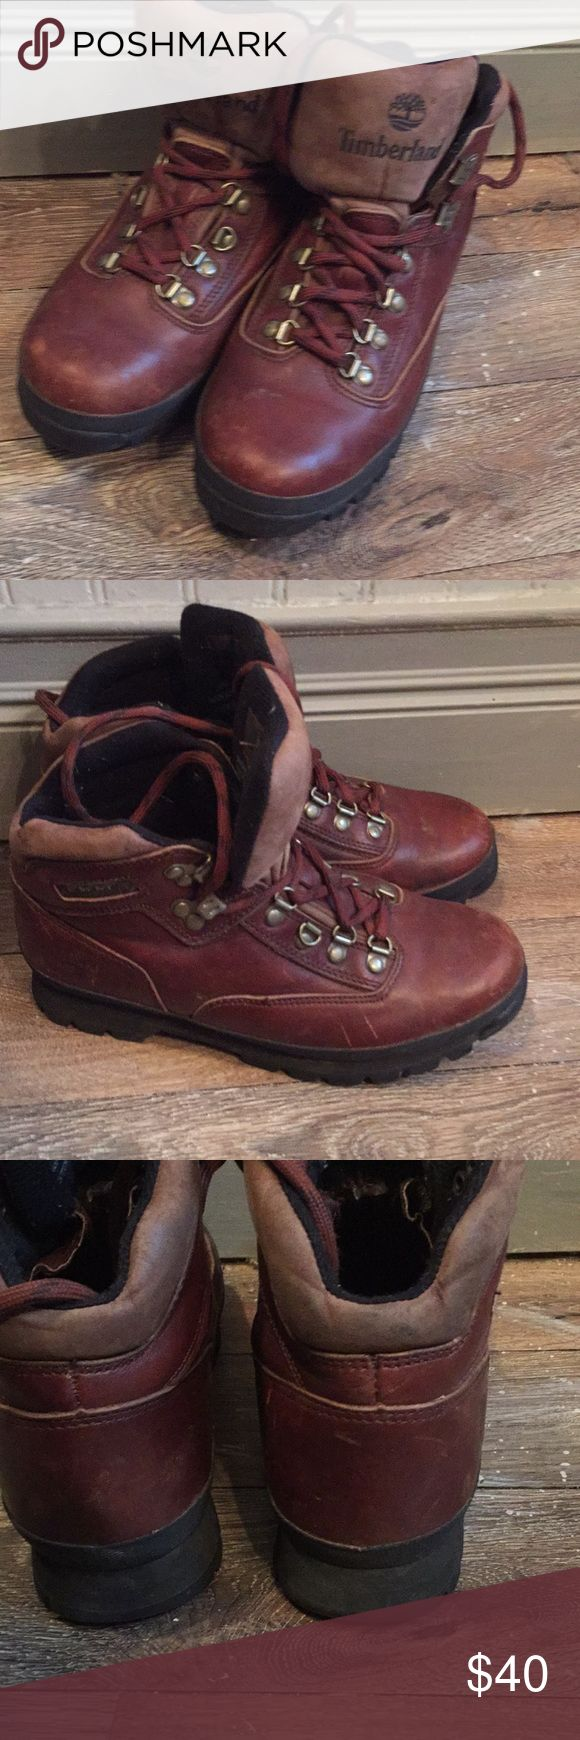 Timberland leather hiking boots Leather rugged hiking boots Timberland Shoes Lace Up Boots